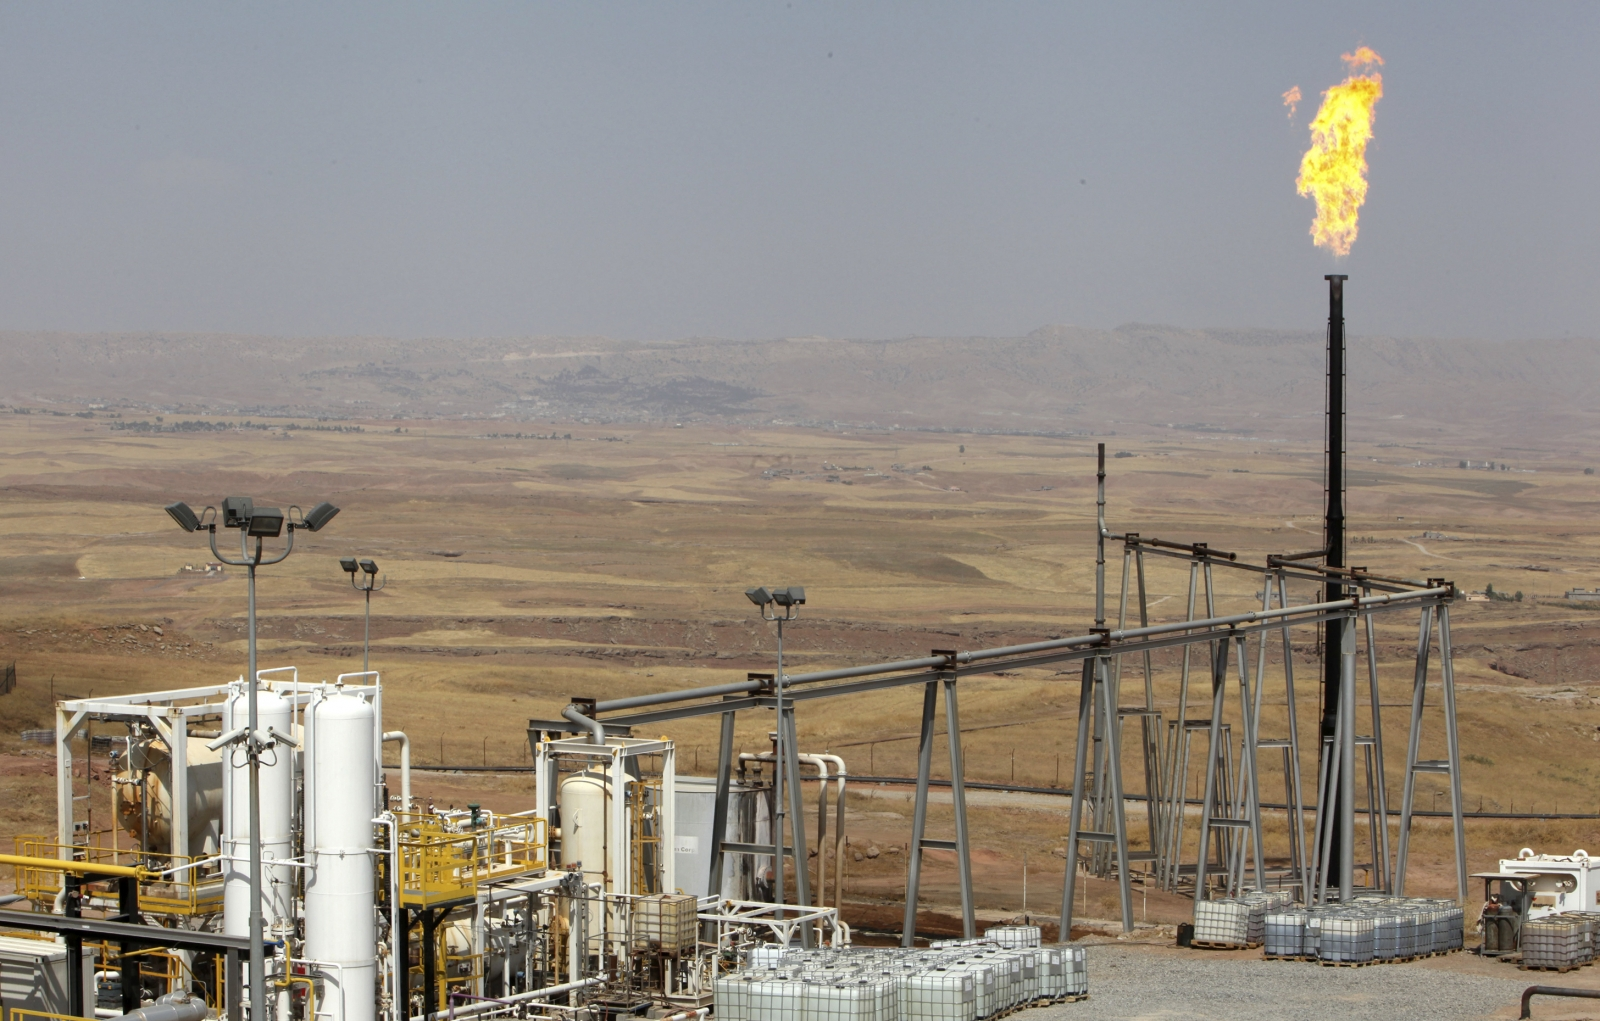 isis sets fire to oil wells in northern iraq